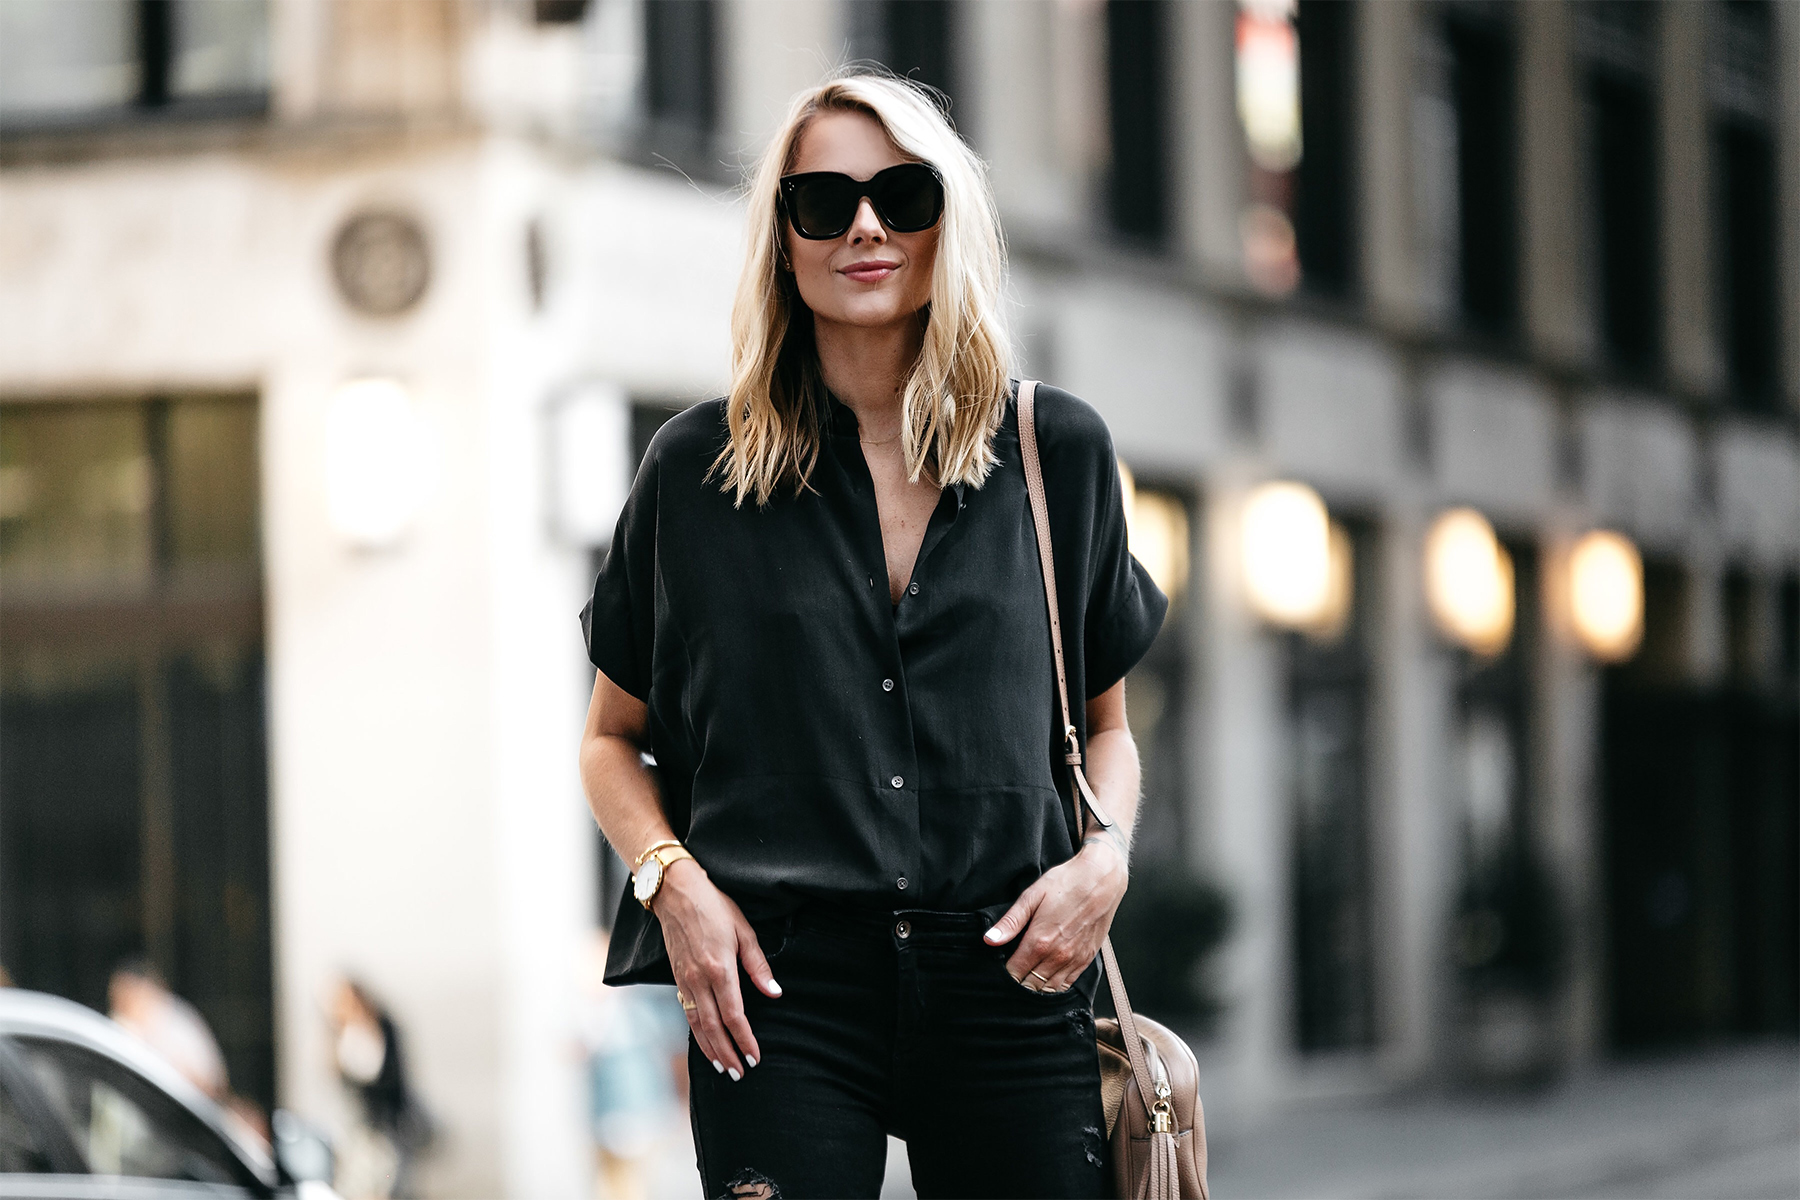 Blonde Woman Wearing Everlane Black Short Sleeve Button Up Shirt Fashion Jackson Dallas Blogger Fashion Blogger